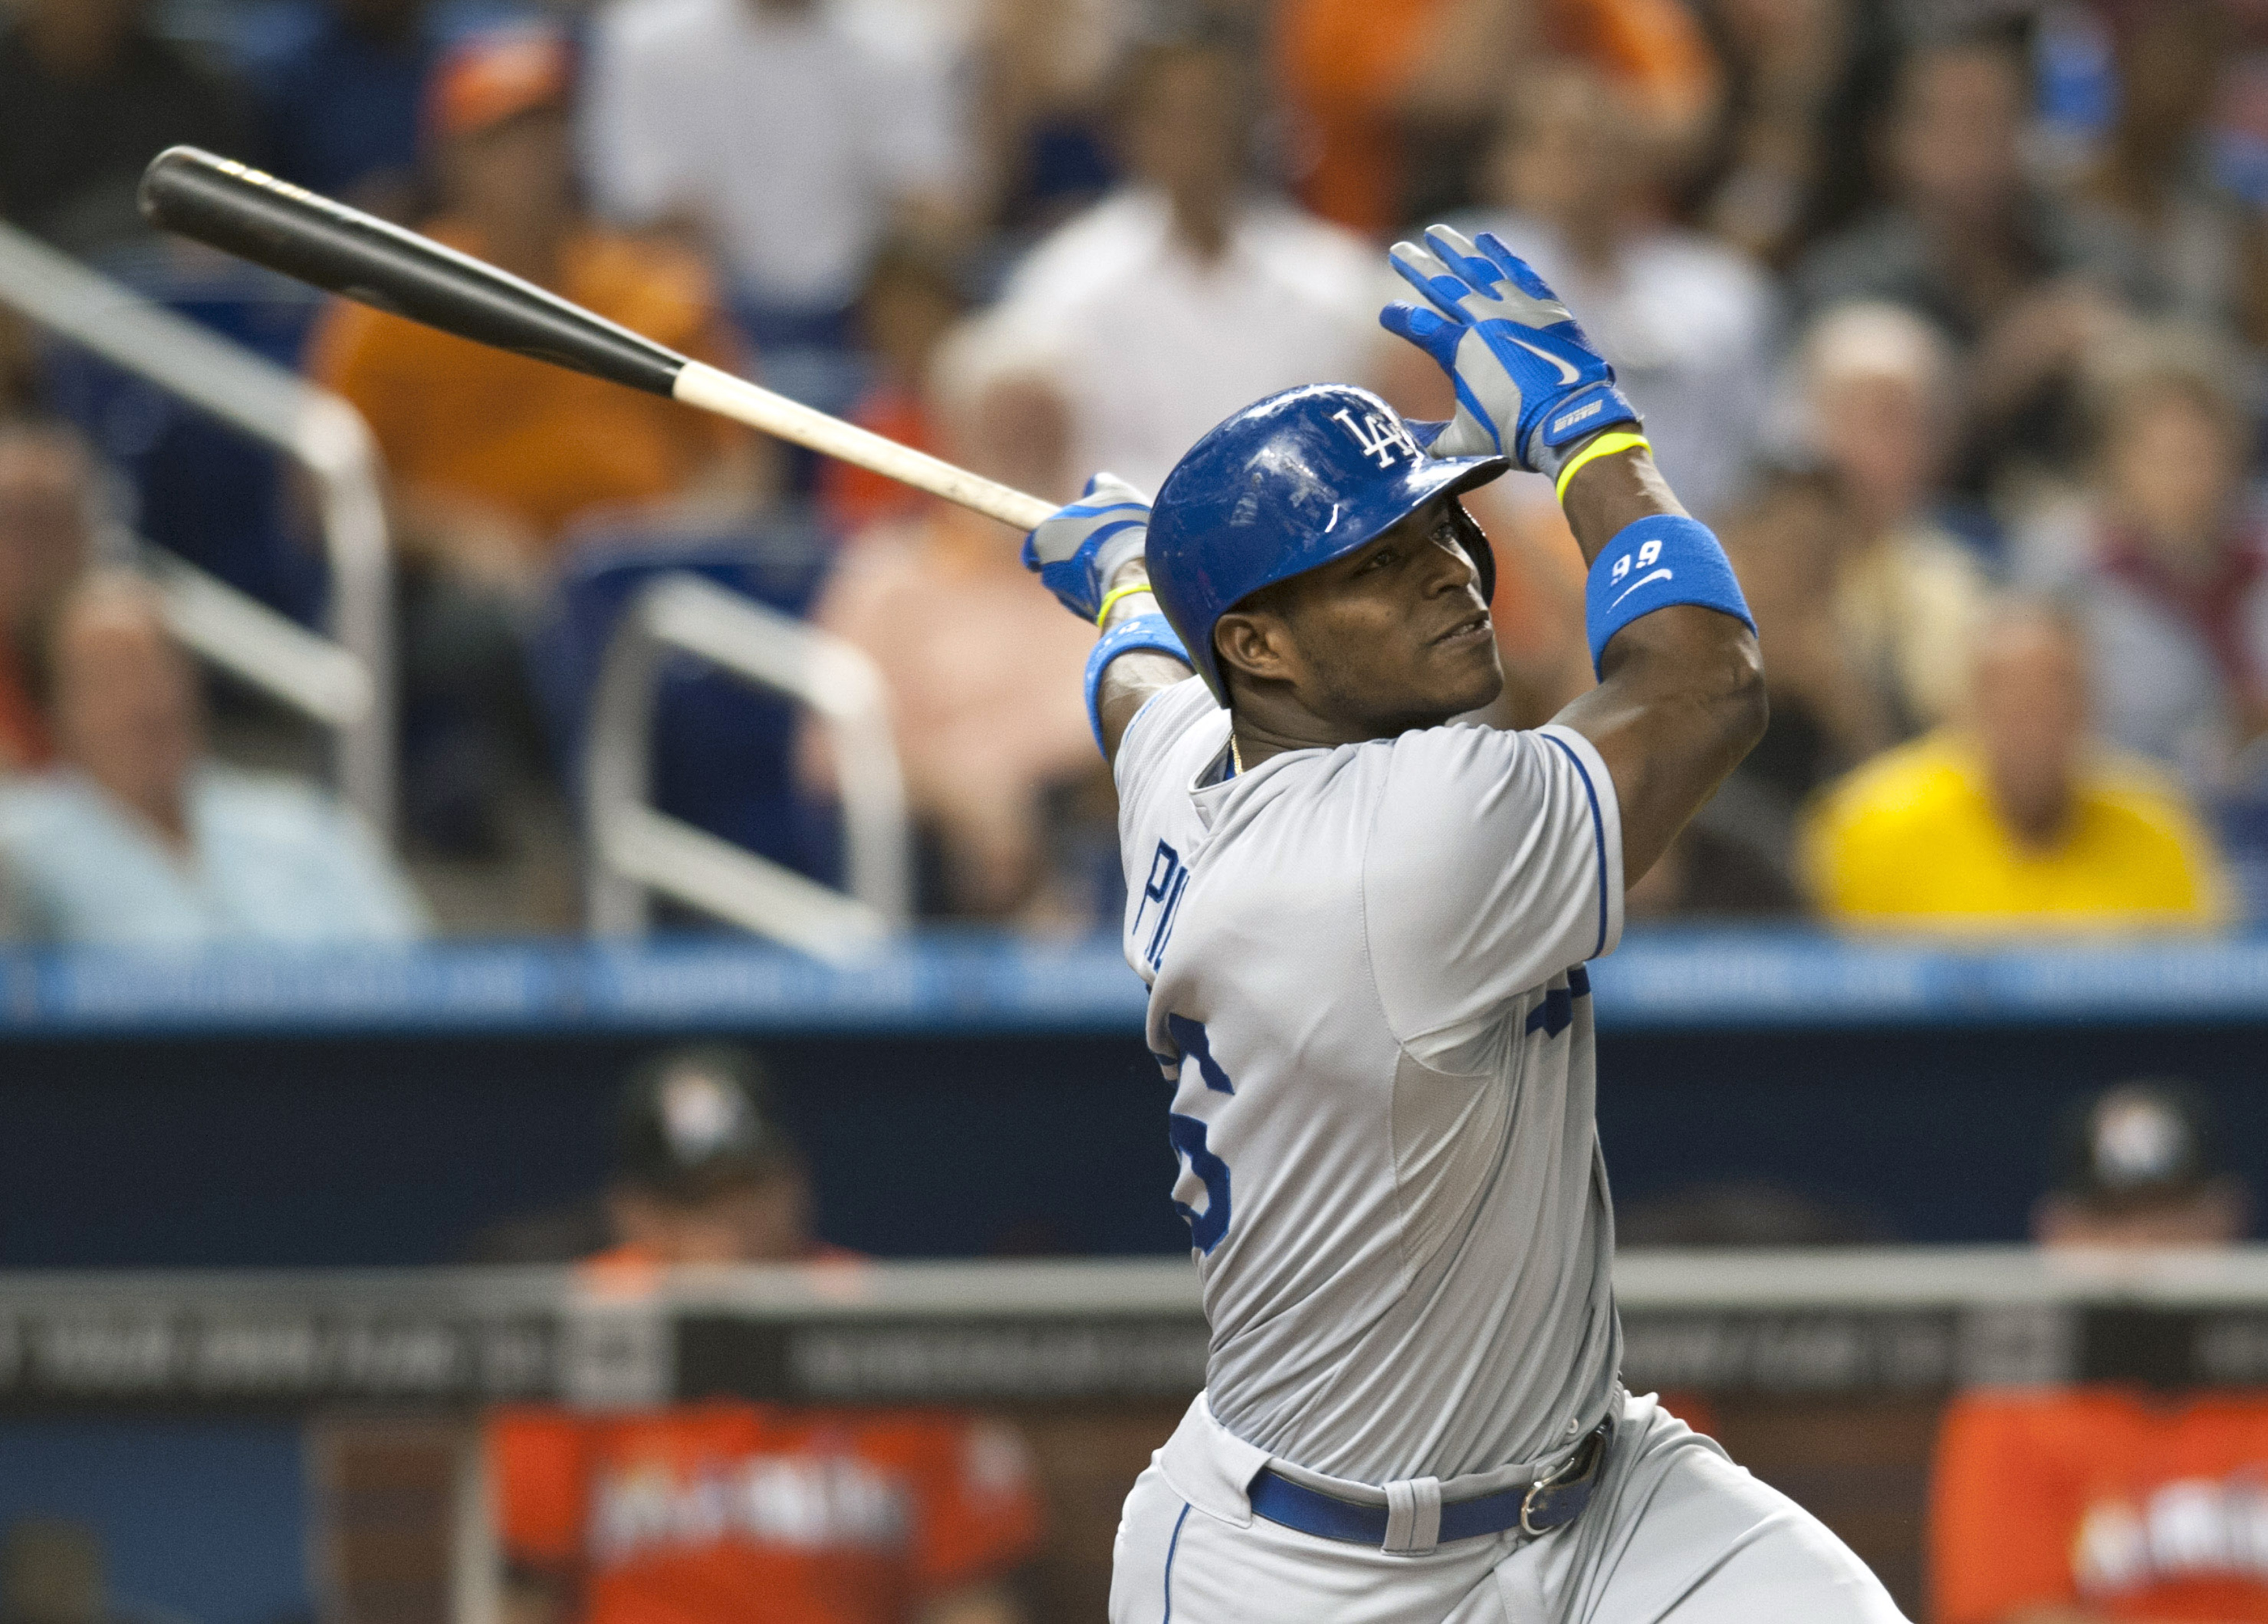 Yasiel Puig, benched by Dodgers, hits game-winning homer anyway